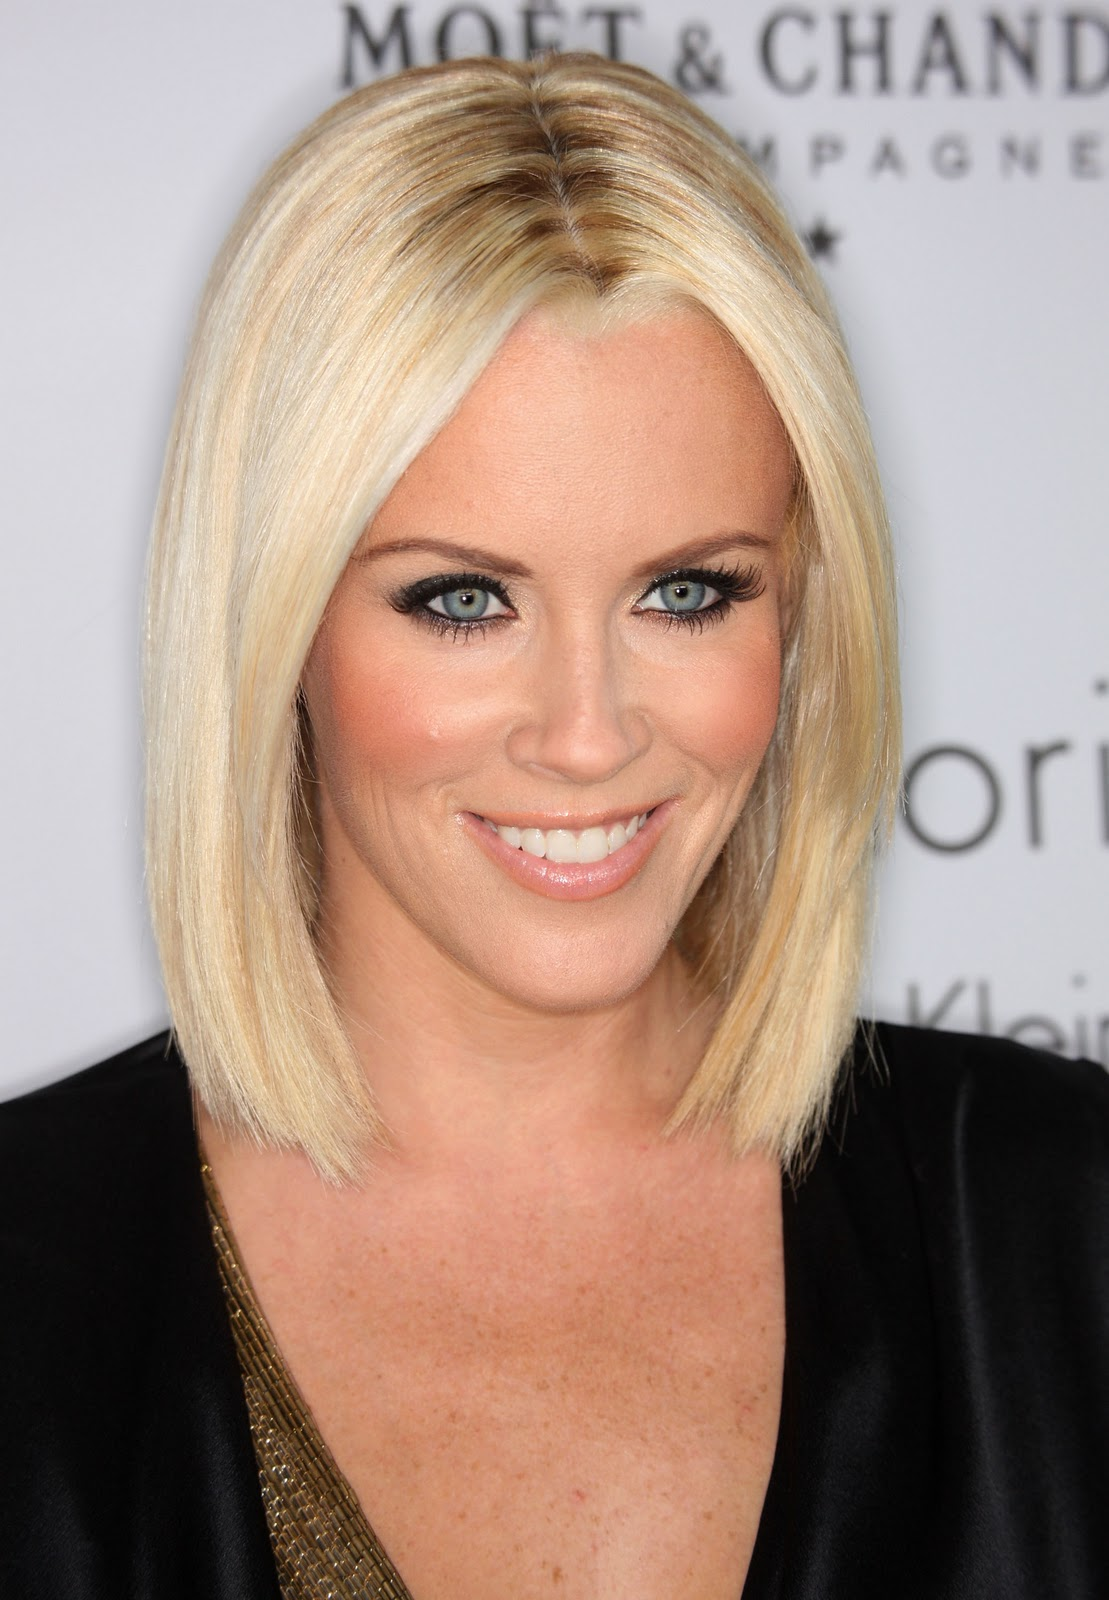 Former Playboy Model Jenny Mccarthy Has Expressed Regret About Not Making A Sex Tape Speaking To Access Hollywood The 37 Year Old Admitted She Is Yet To